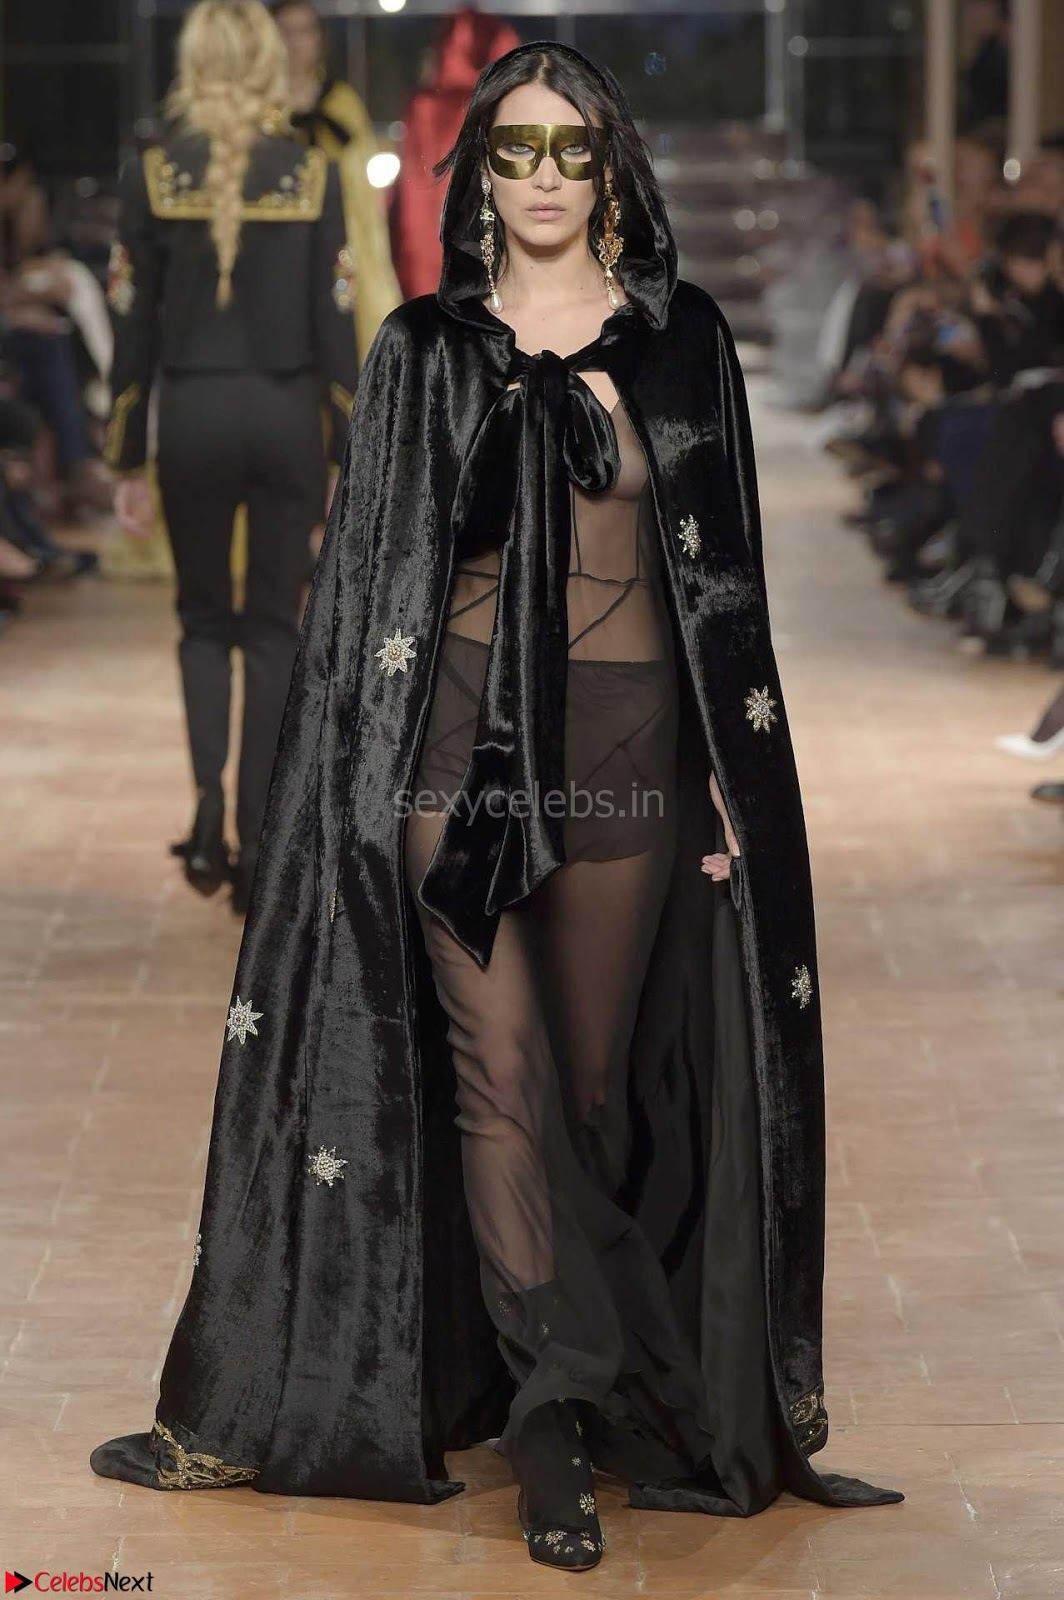 Bella Hadid Exposing her Beautiful Erect Nipples at Alberta Ferretti Fall 2017 Fashion Show in Milan